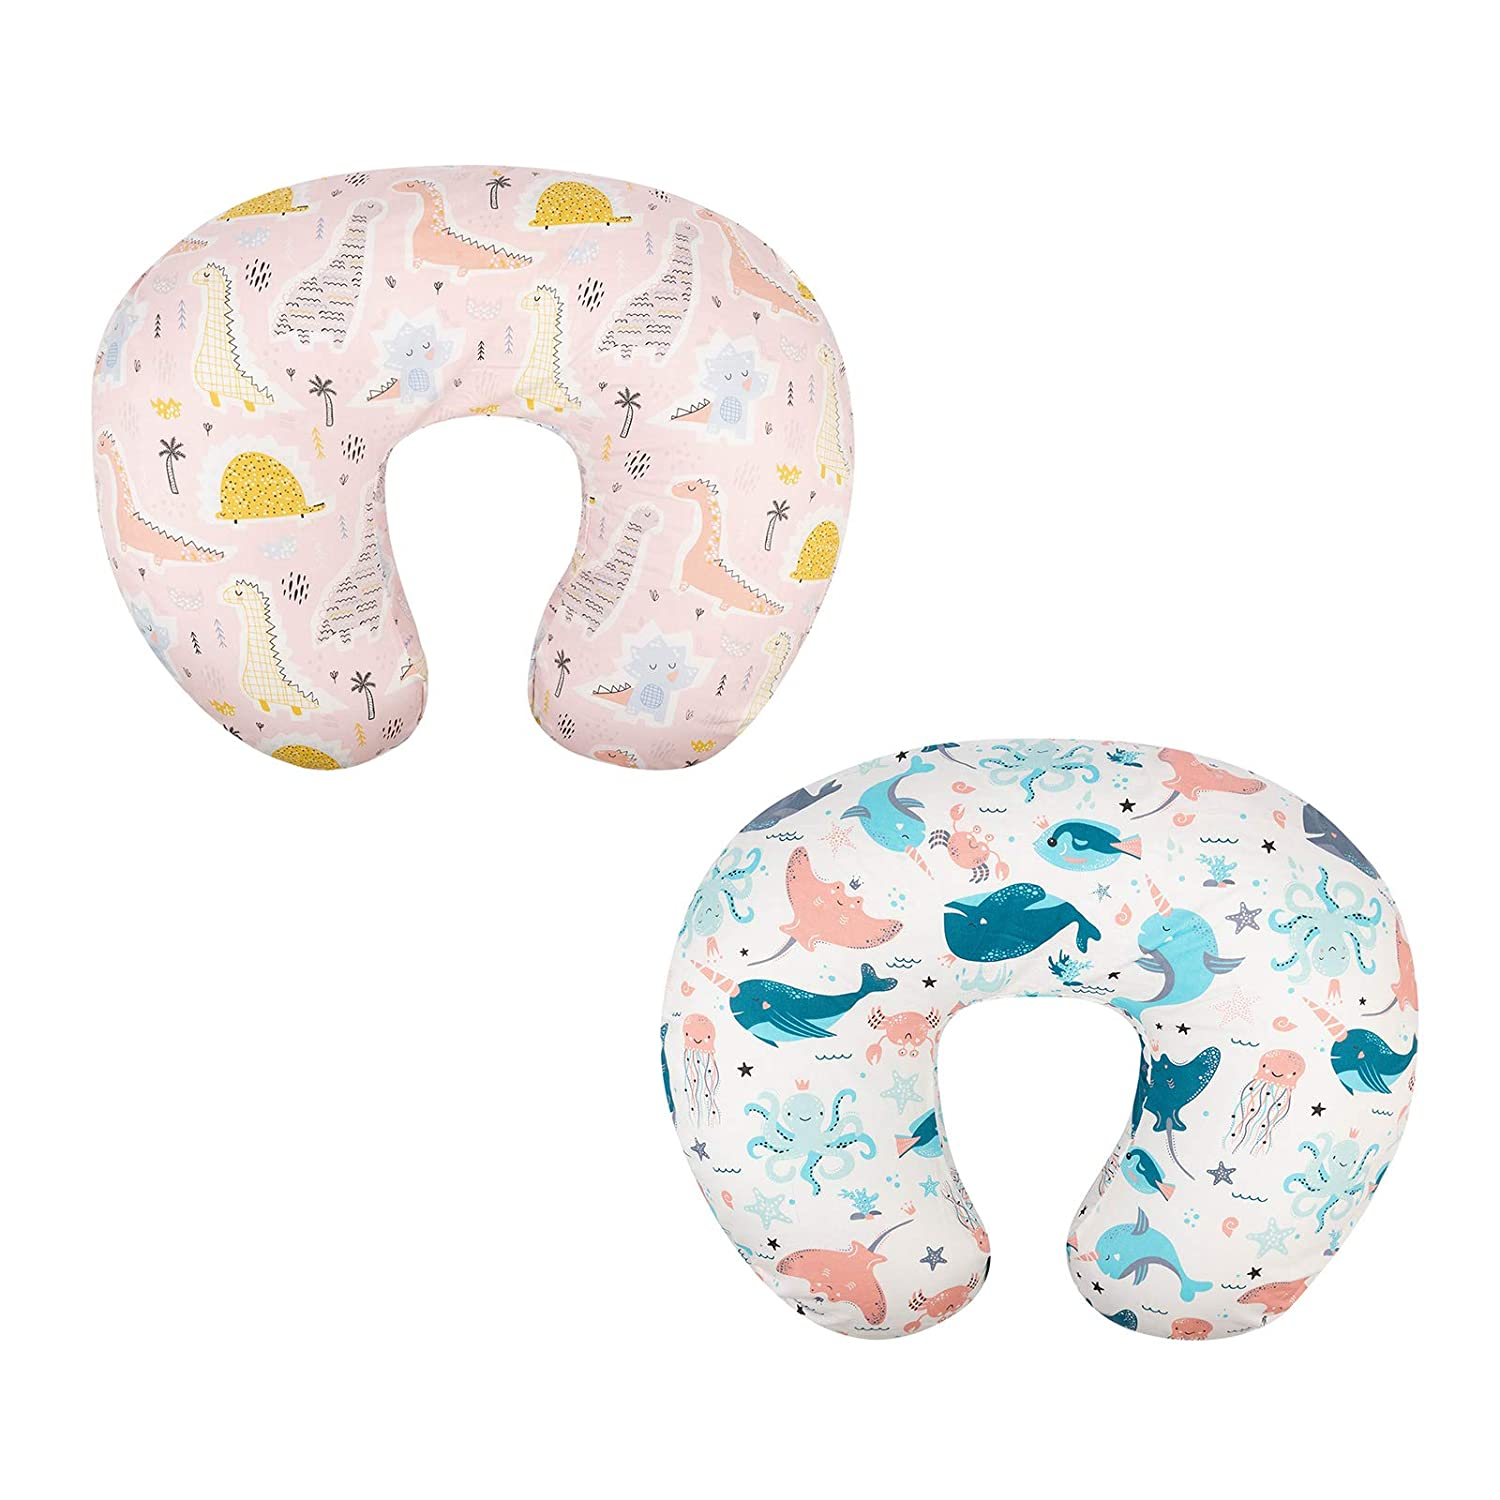 Babygoal Nursing Pillow Covers Slipcovers for Breastfeeding Moms,100% Organic Woven Cotton,20x16x5.5in Maternity Breastfeeding Newborn Infant Feeding Cushion Cover,2 Pack 2CUPW13-B